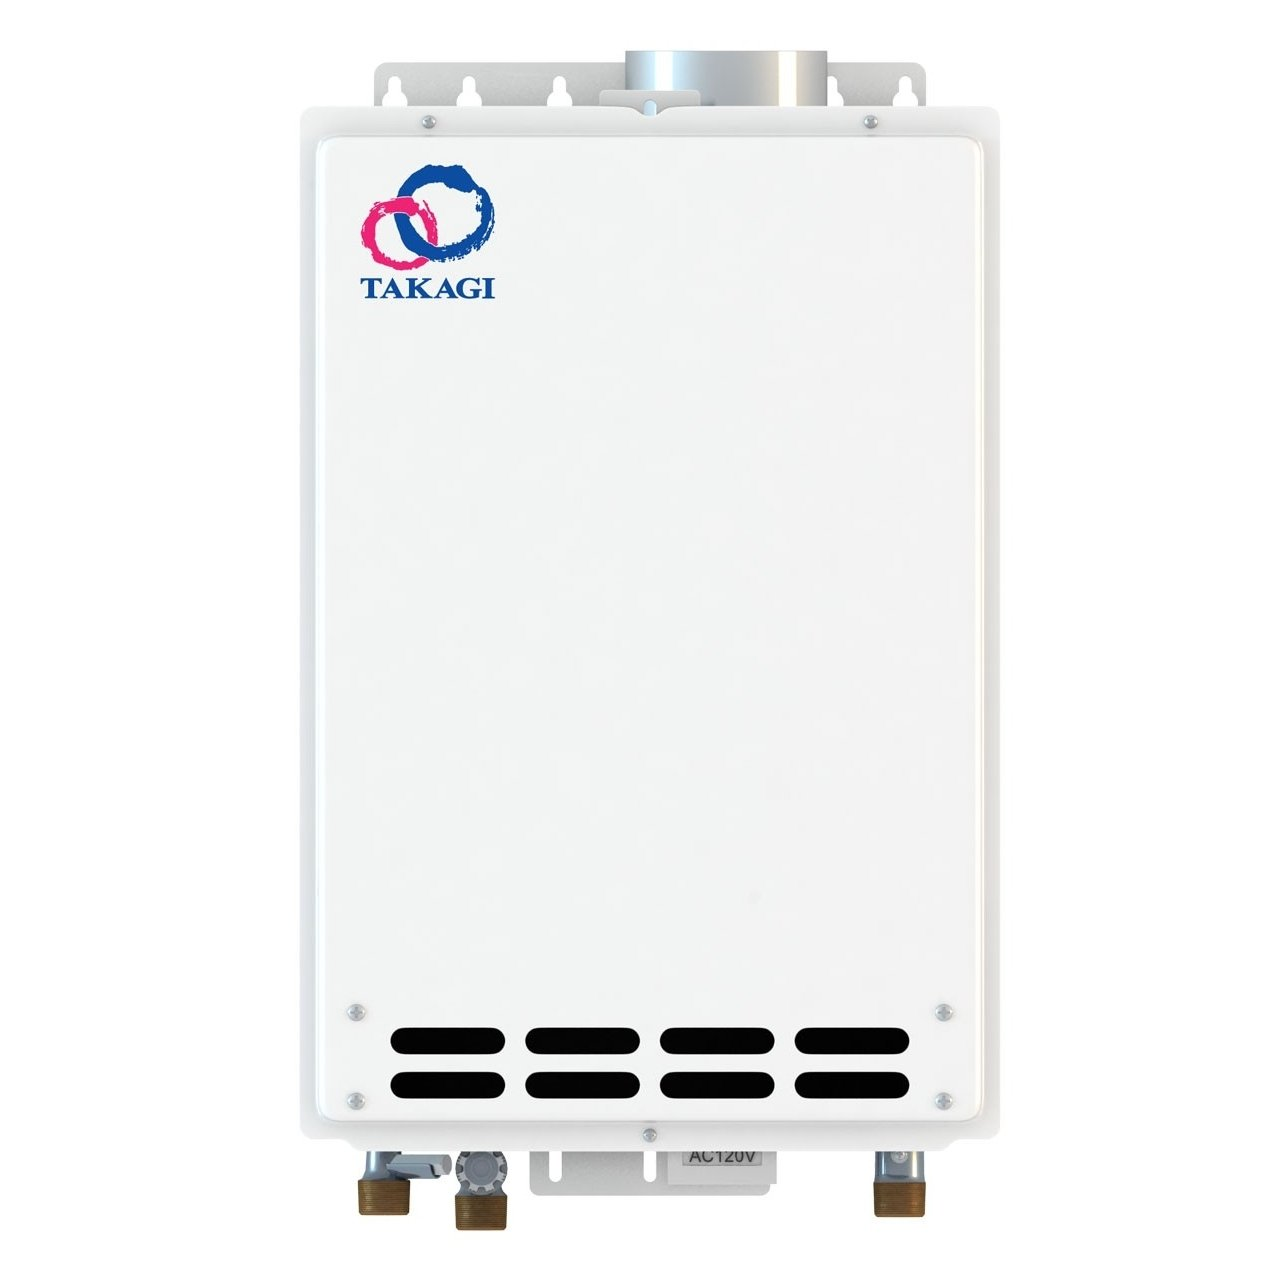 Takagi Indoor Tankless Water Heater, Natural Gas